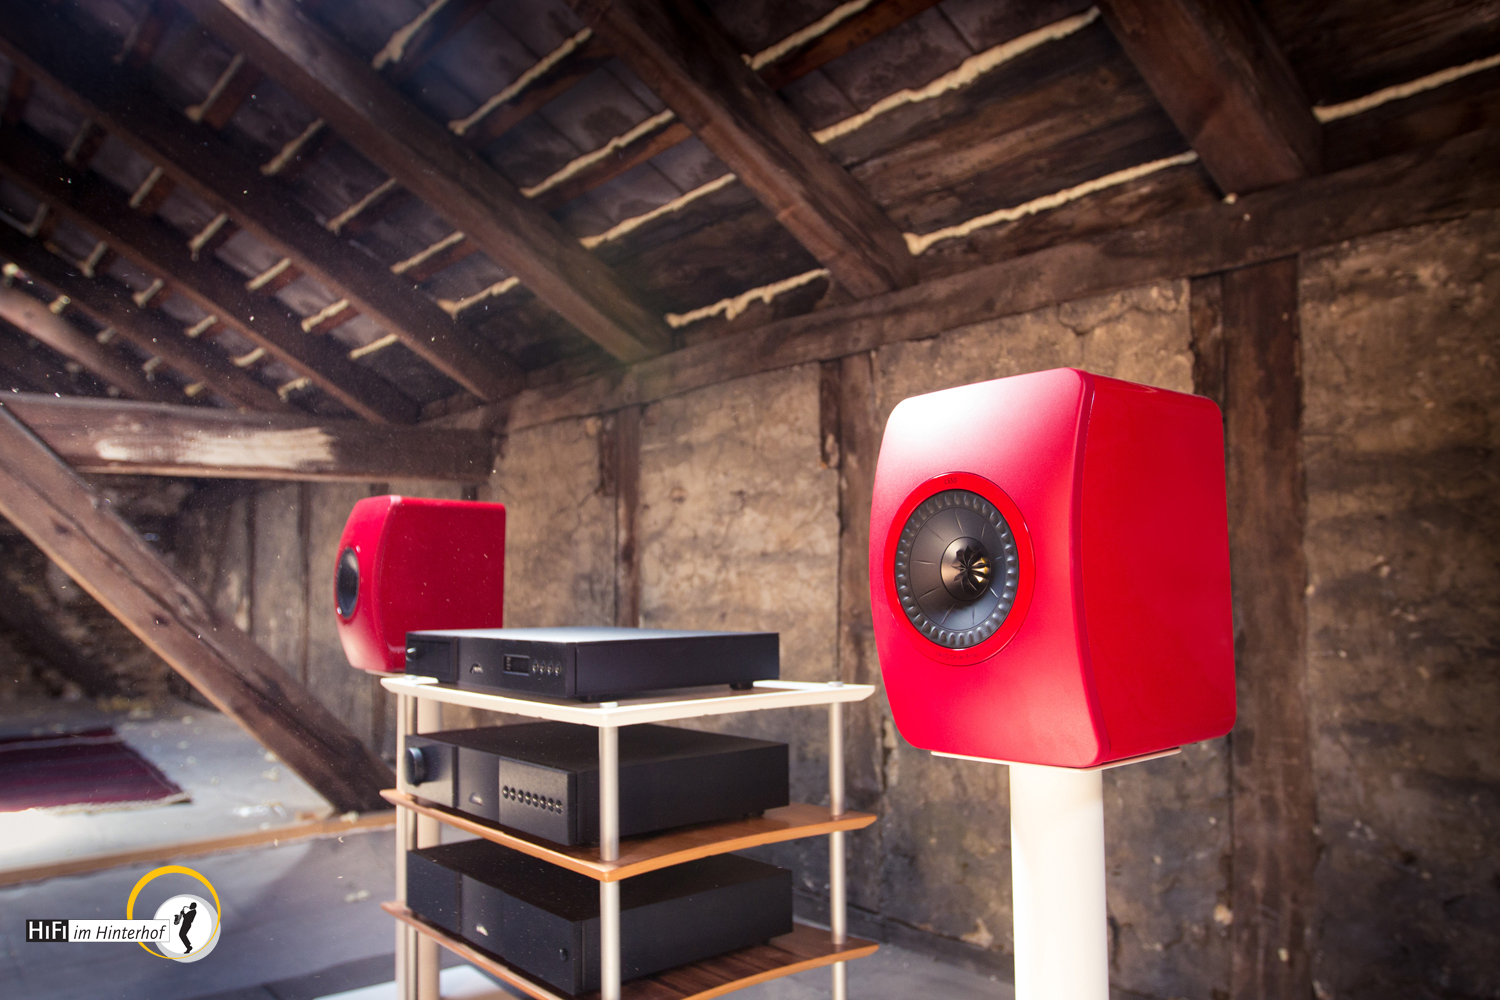 hifi-im-hinterhof-berlin-session-kef-ls50-III